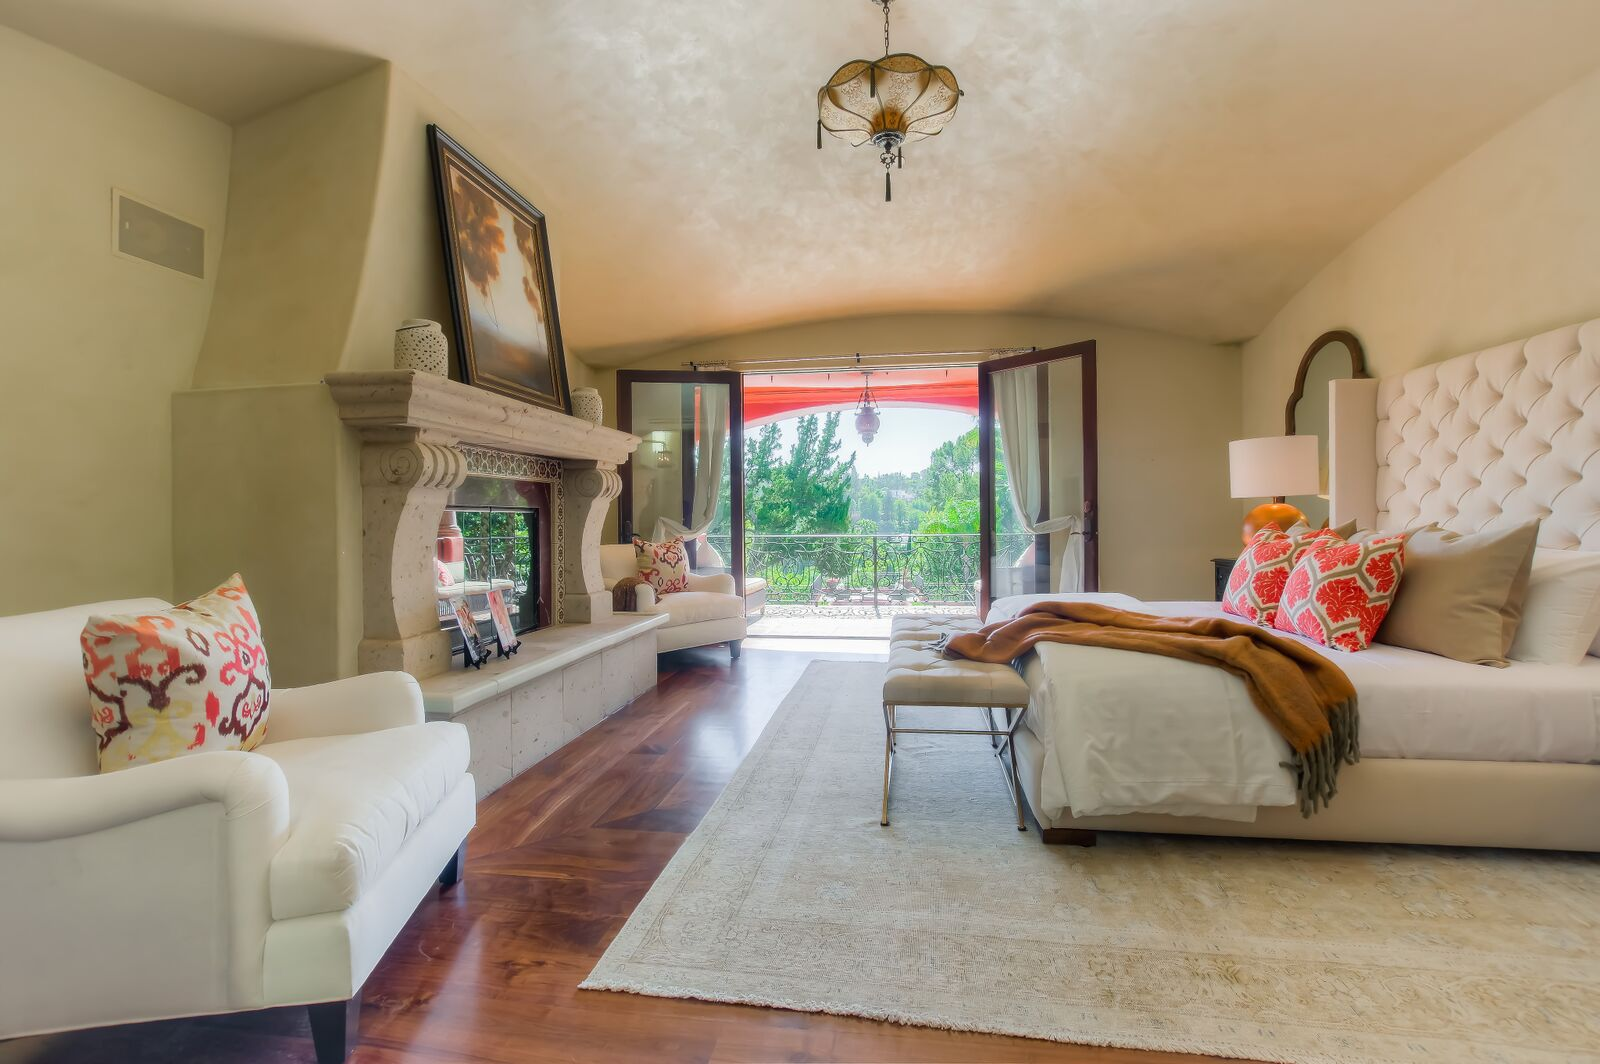 Latina actress alex meneses s spanish style home is for - Everybody loves raymond bedroom set ...